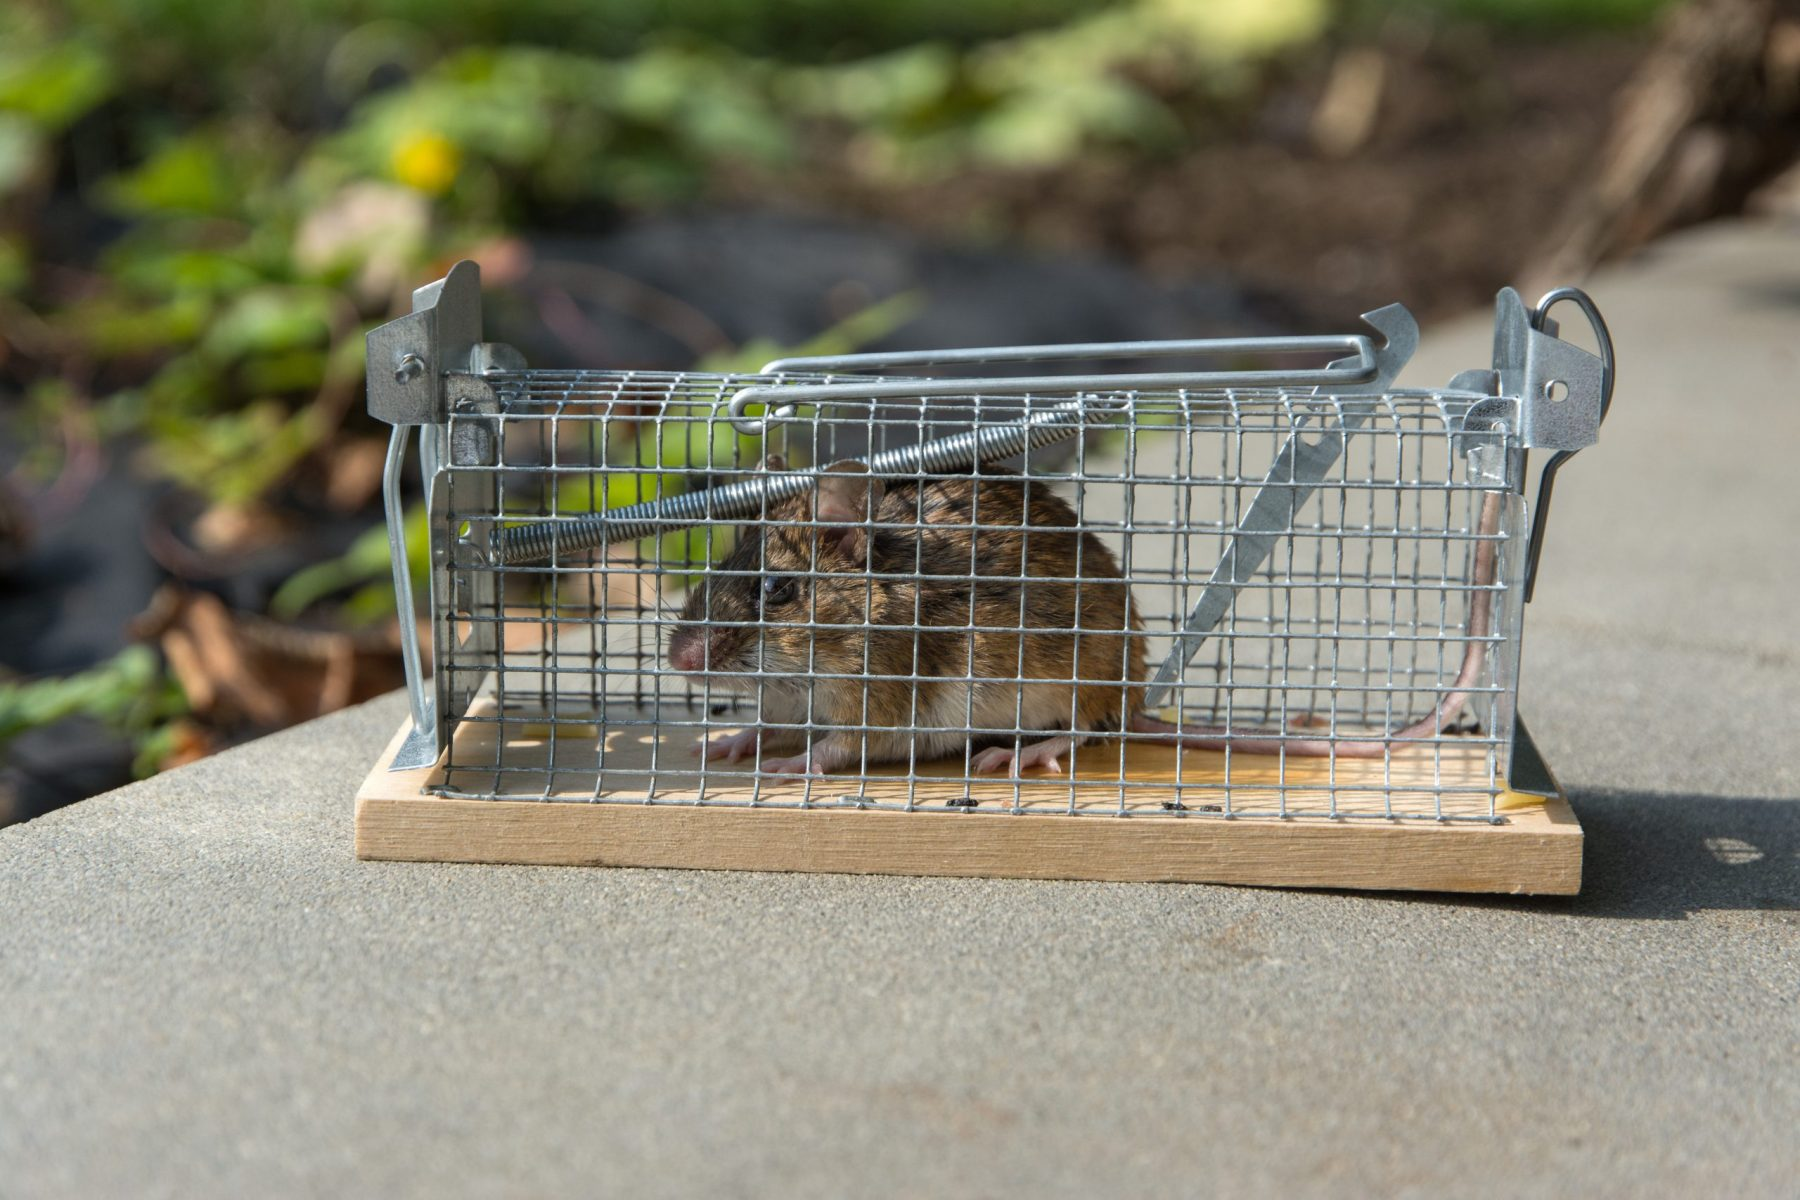 Mouse in live capture trap.